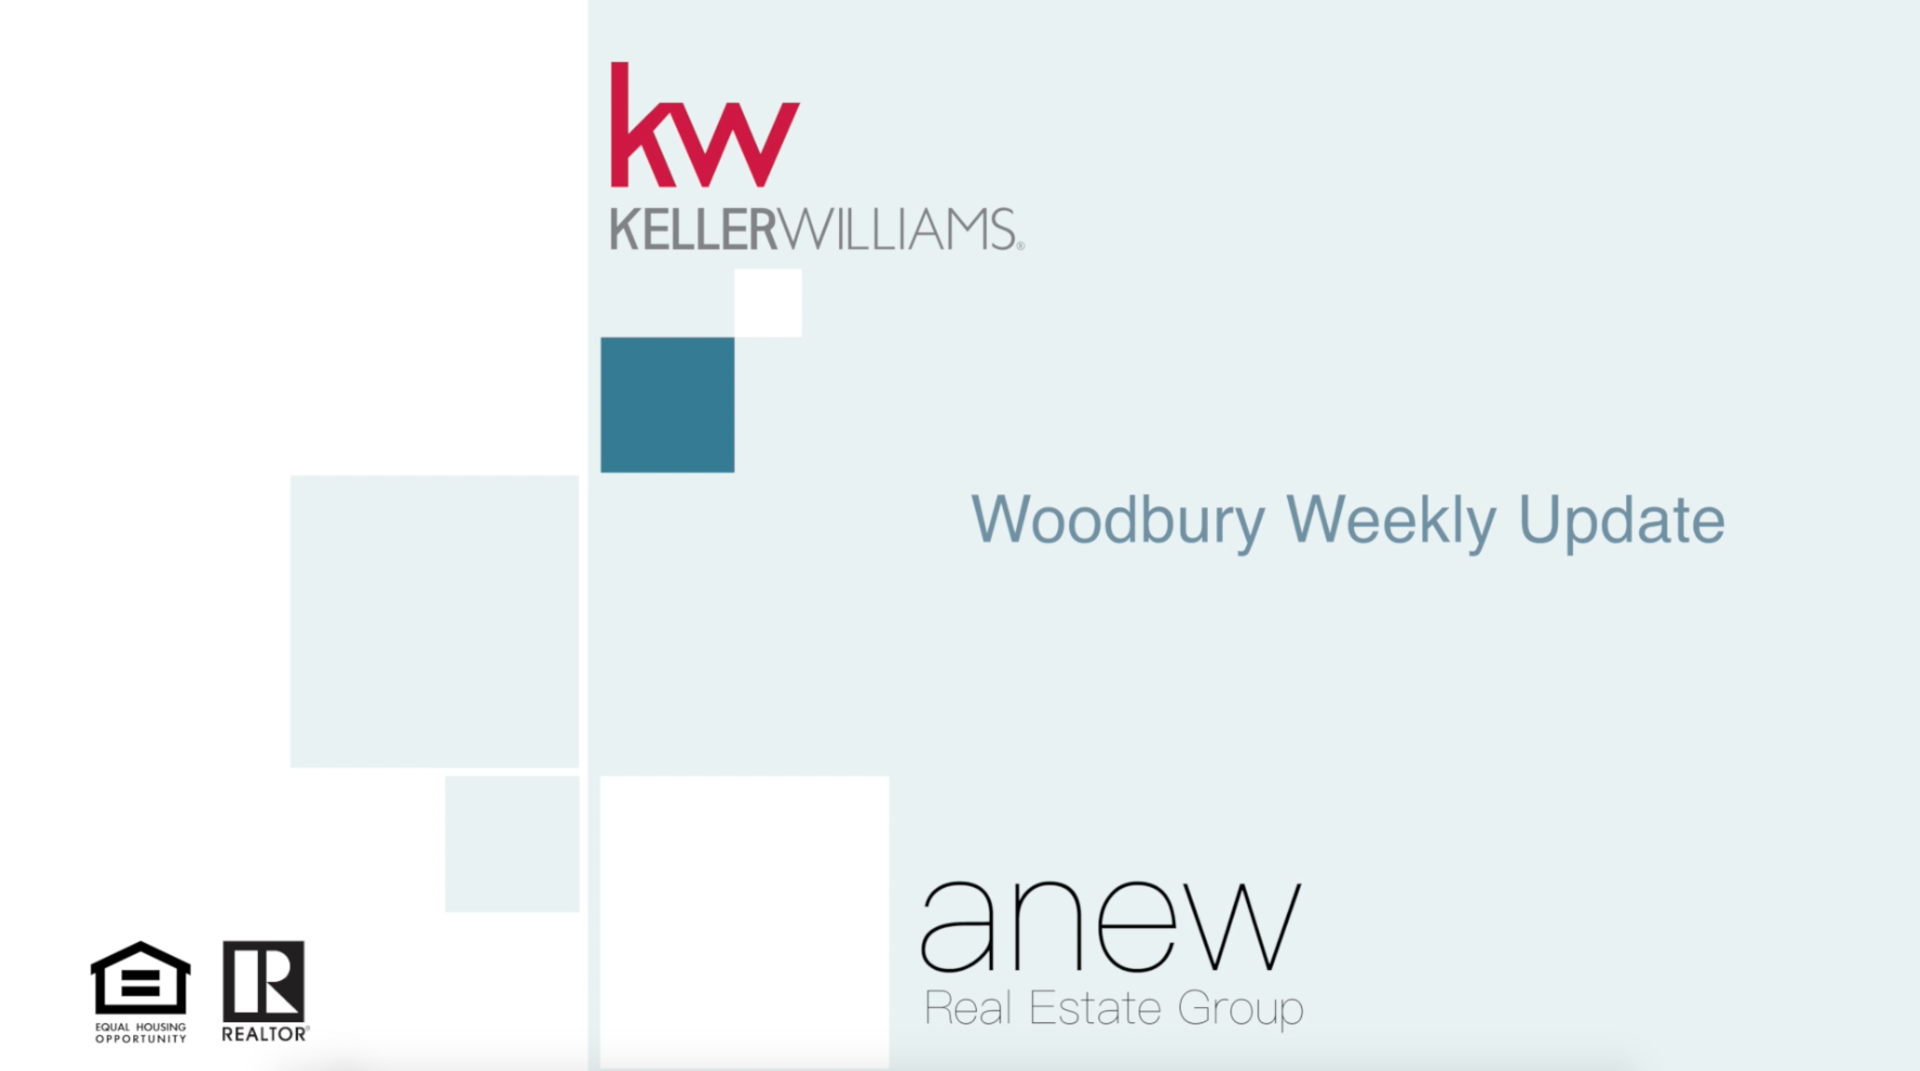 Woodbury Weekly Update for June 11th, 2018.